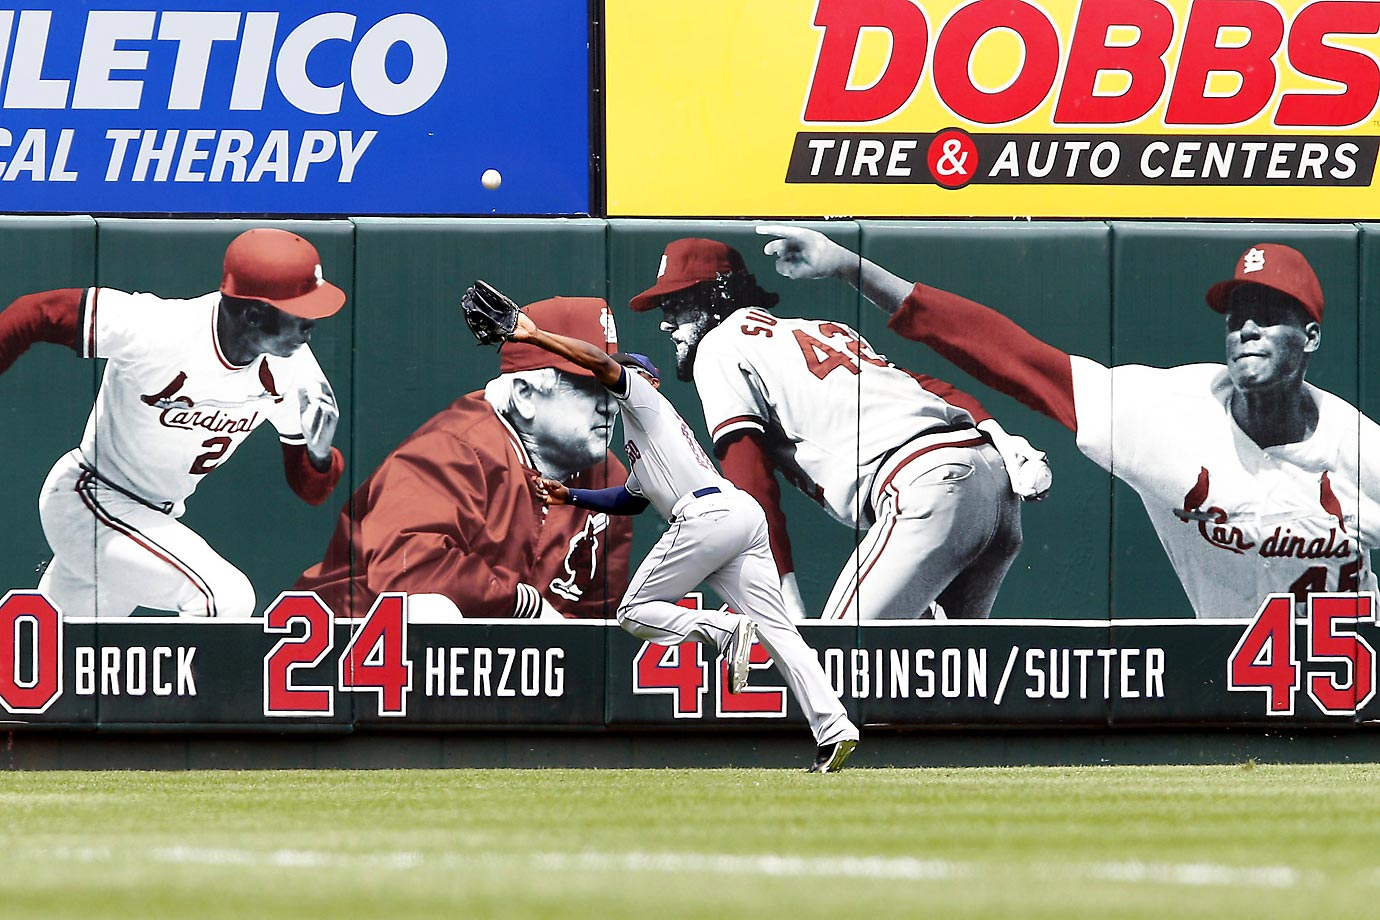 Justin Upton of the San Diego Padres makes a catch during a game against the St. Louis Cardinals.